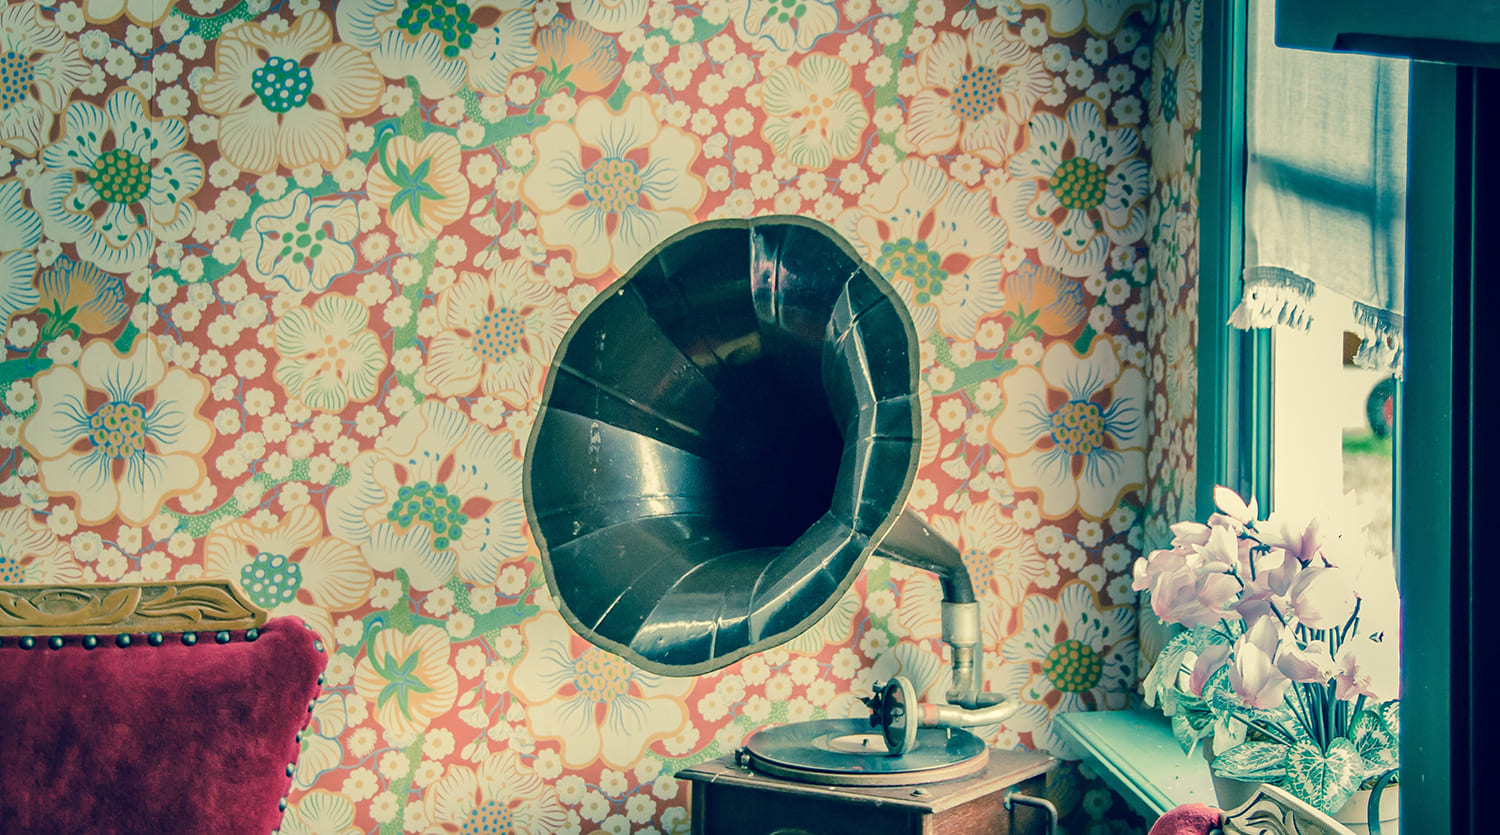 brown-and-black-gramophone-594388